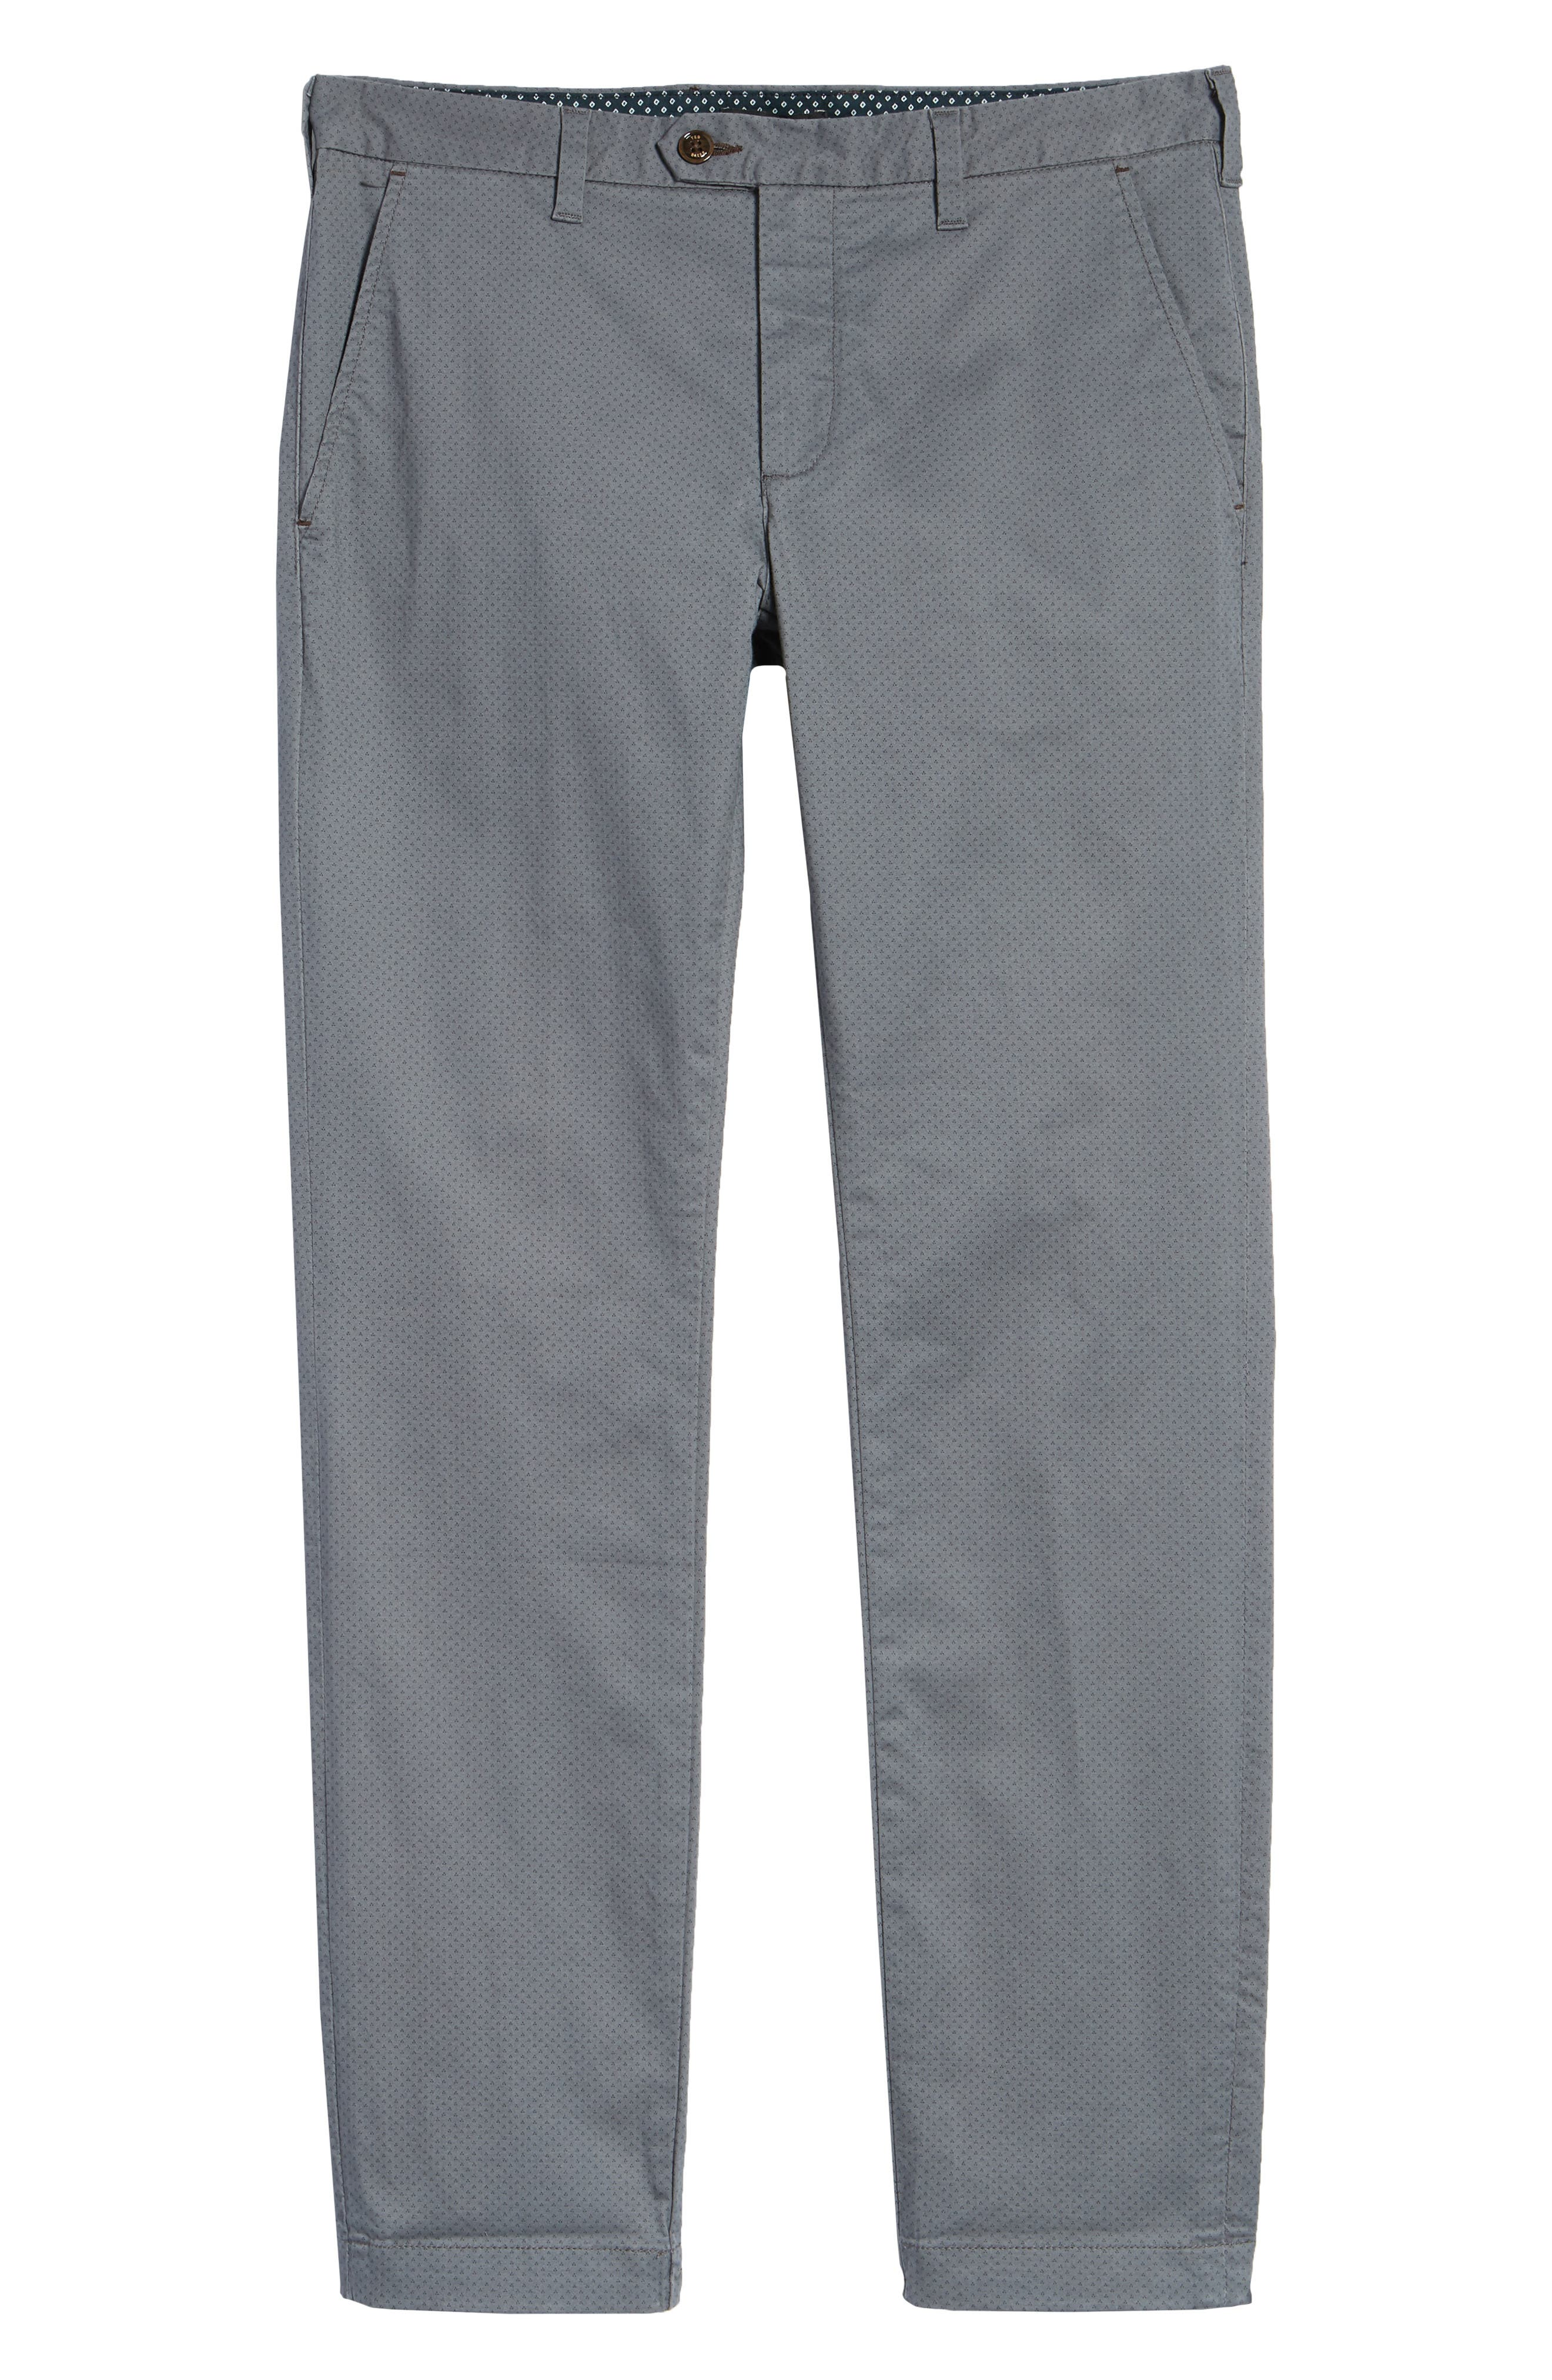 Nalloe Dot Print Slim Trousers,                             Alternate thumbnail 6, color,                             GREY